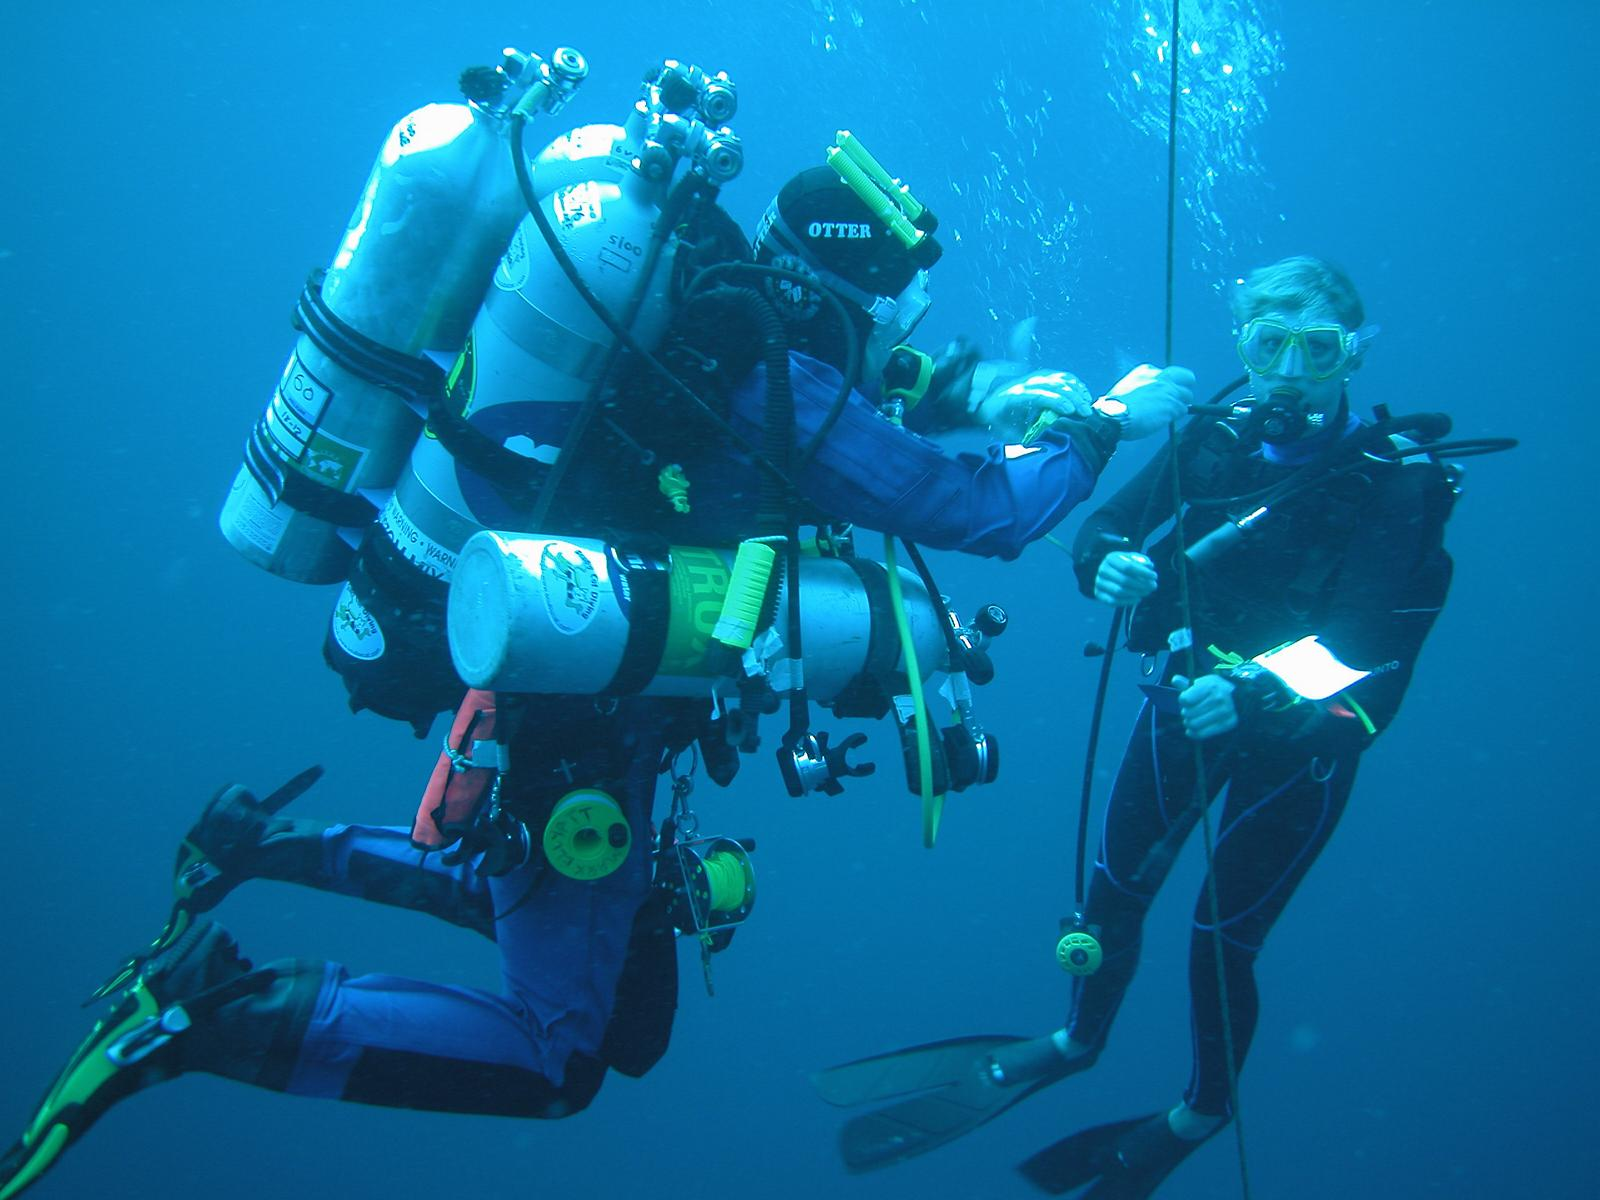 term paper on scuba diving Download thesis statement on scuba diving its dangers and rewards in our database or order an original thesis paper that will be written by one of our staff writers and delivered according to the deadline.